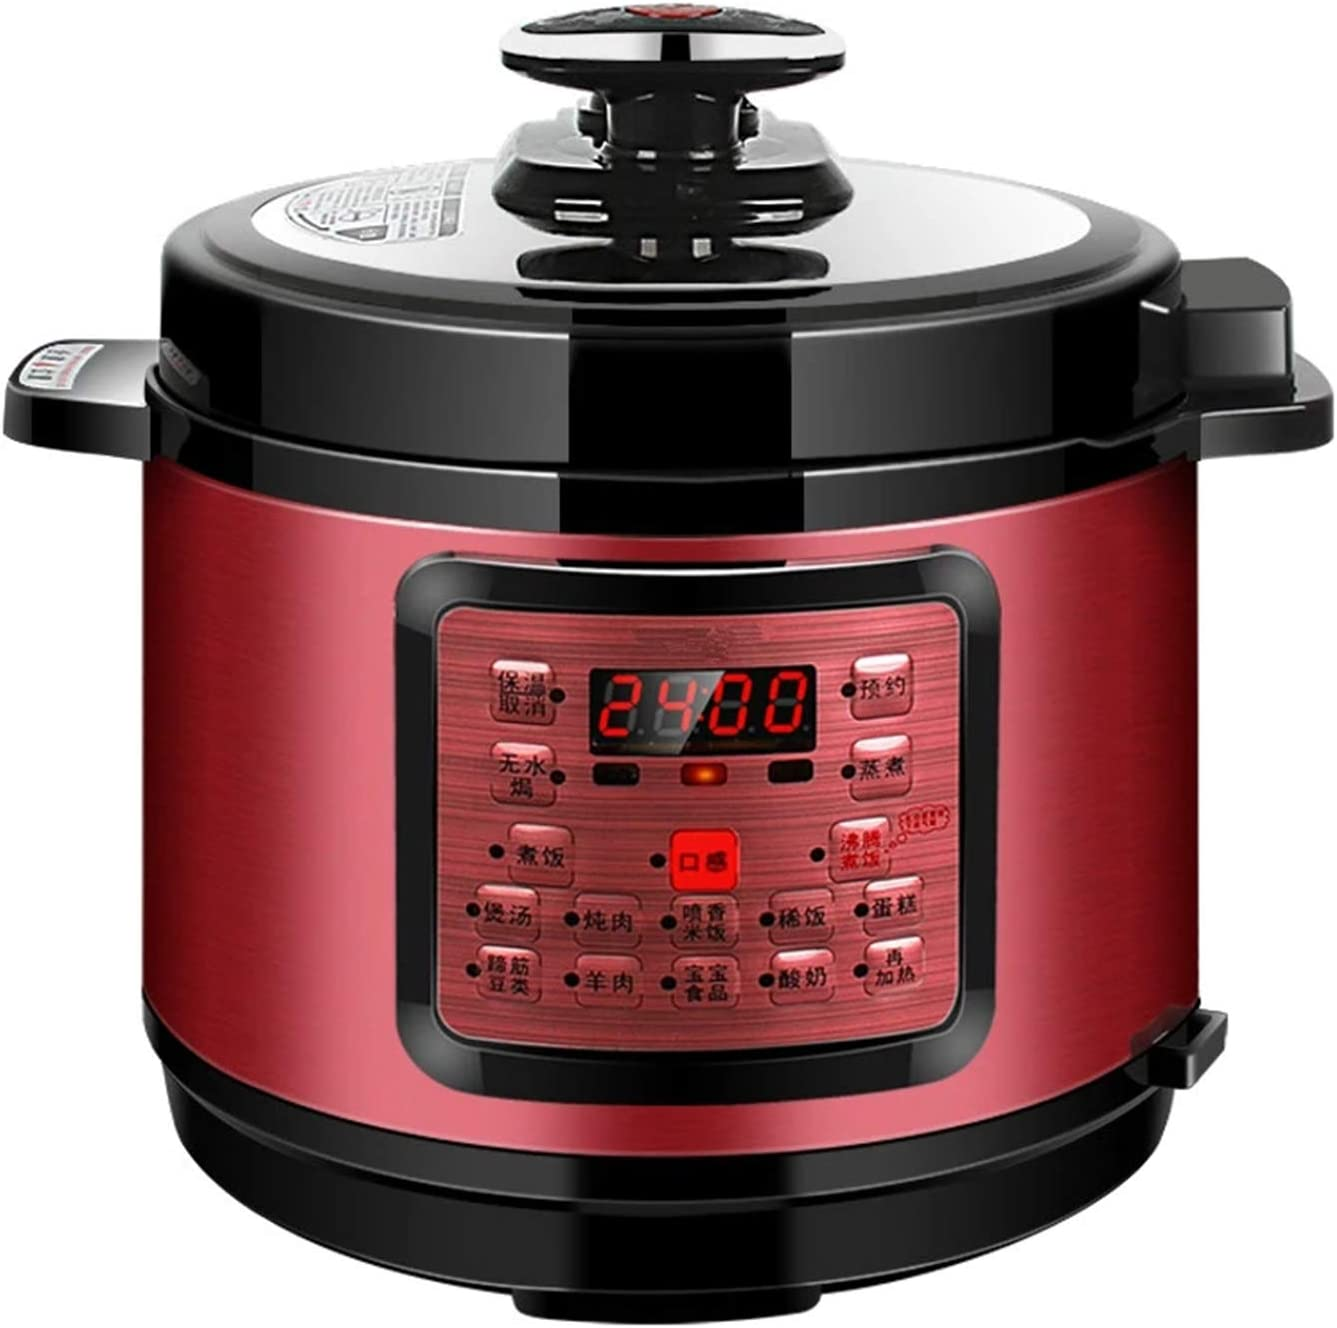 10-in-1 Electric Pressure Cooker, Instant LCD Digital Pressure Pot, 304 Stainless Steel Slow Cooker, Steamer, Rice Cooker